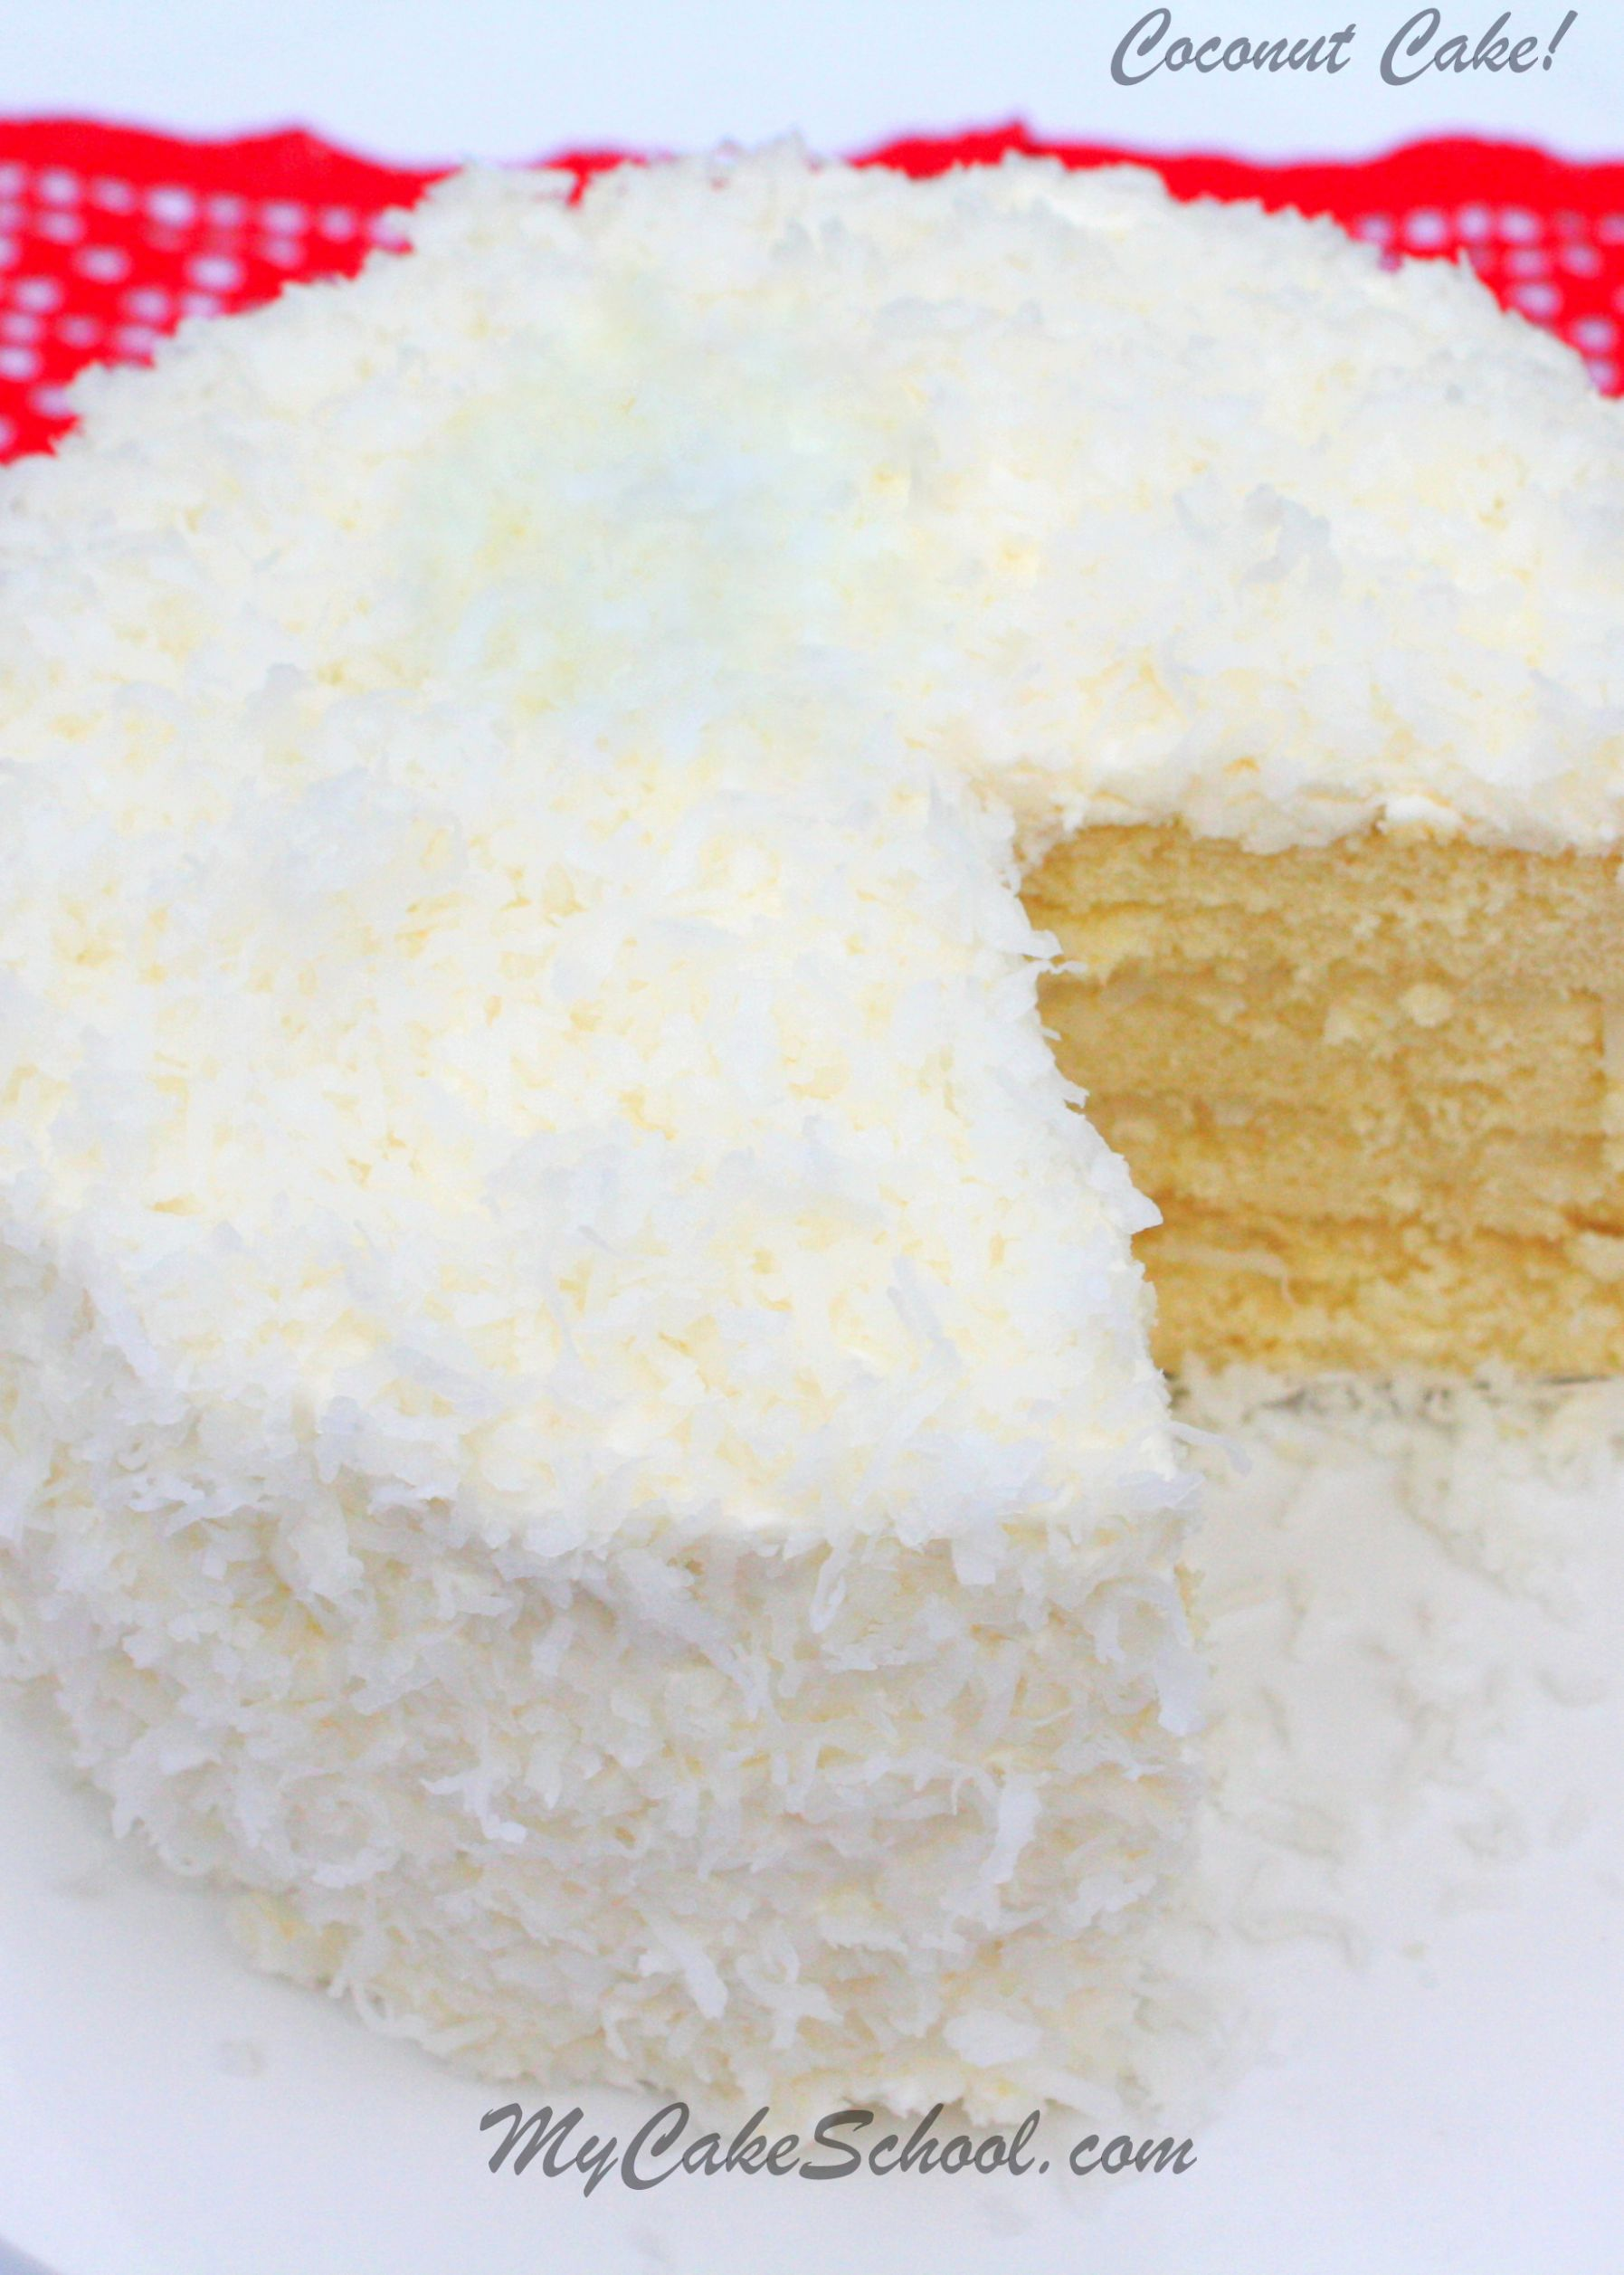 Coconut Cake - Recipes Cakes From Scratch